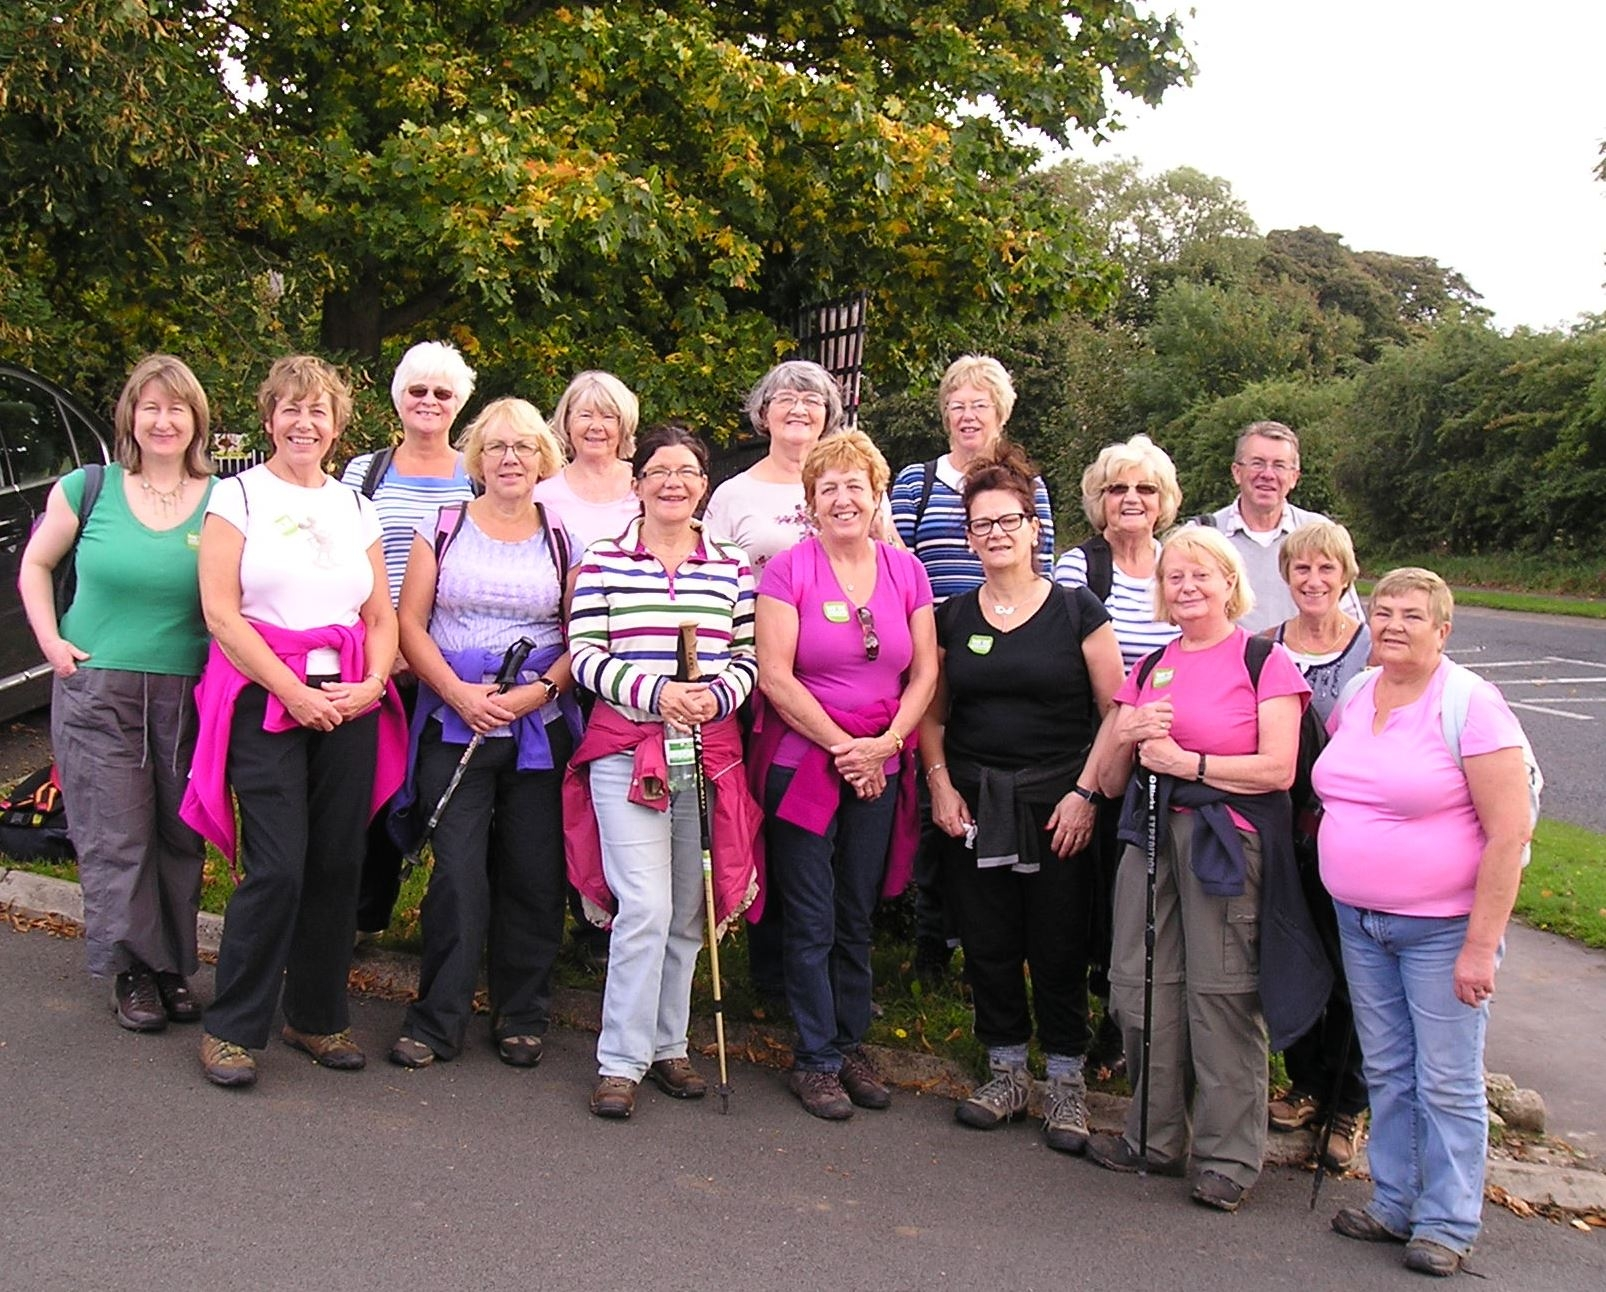 KFA Moves members on their sponsored walk in Low Coniscliffe in aid of Macmillan